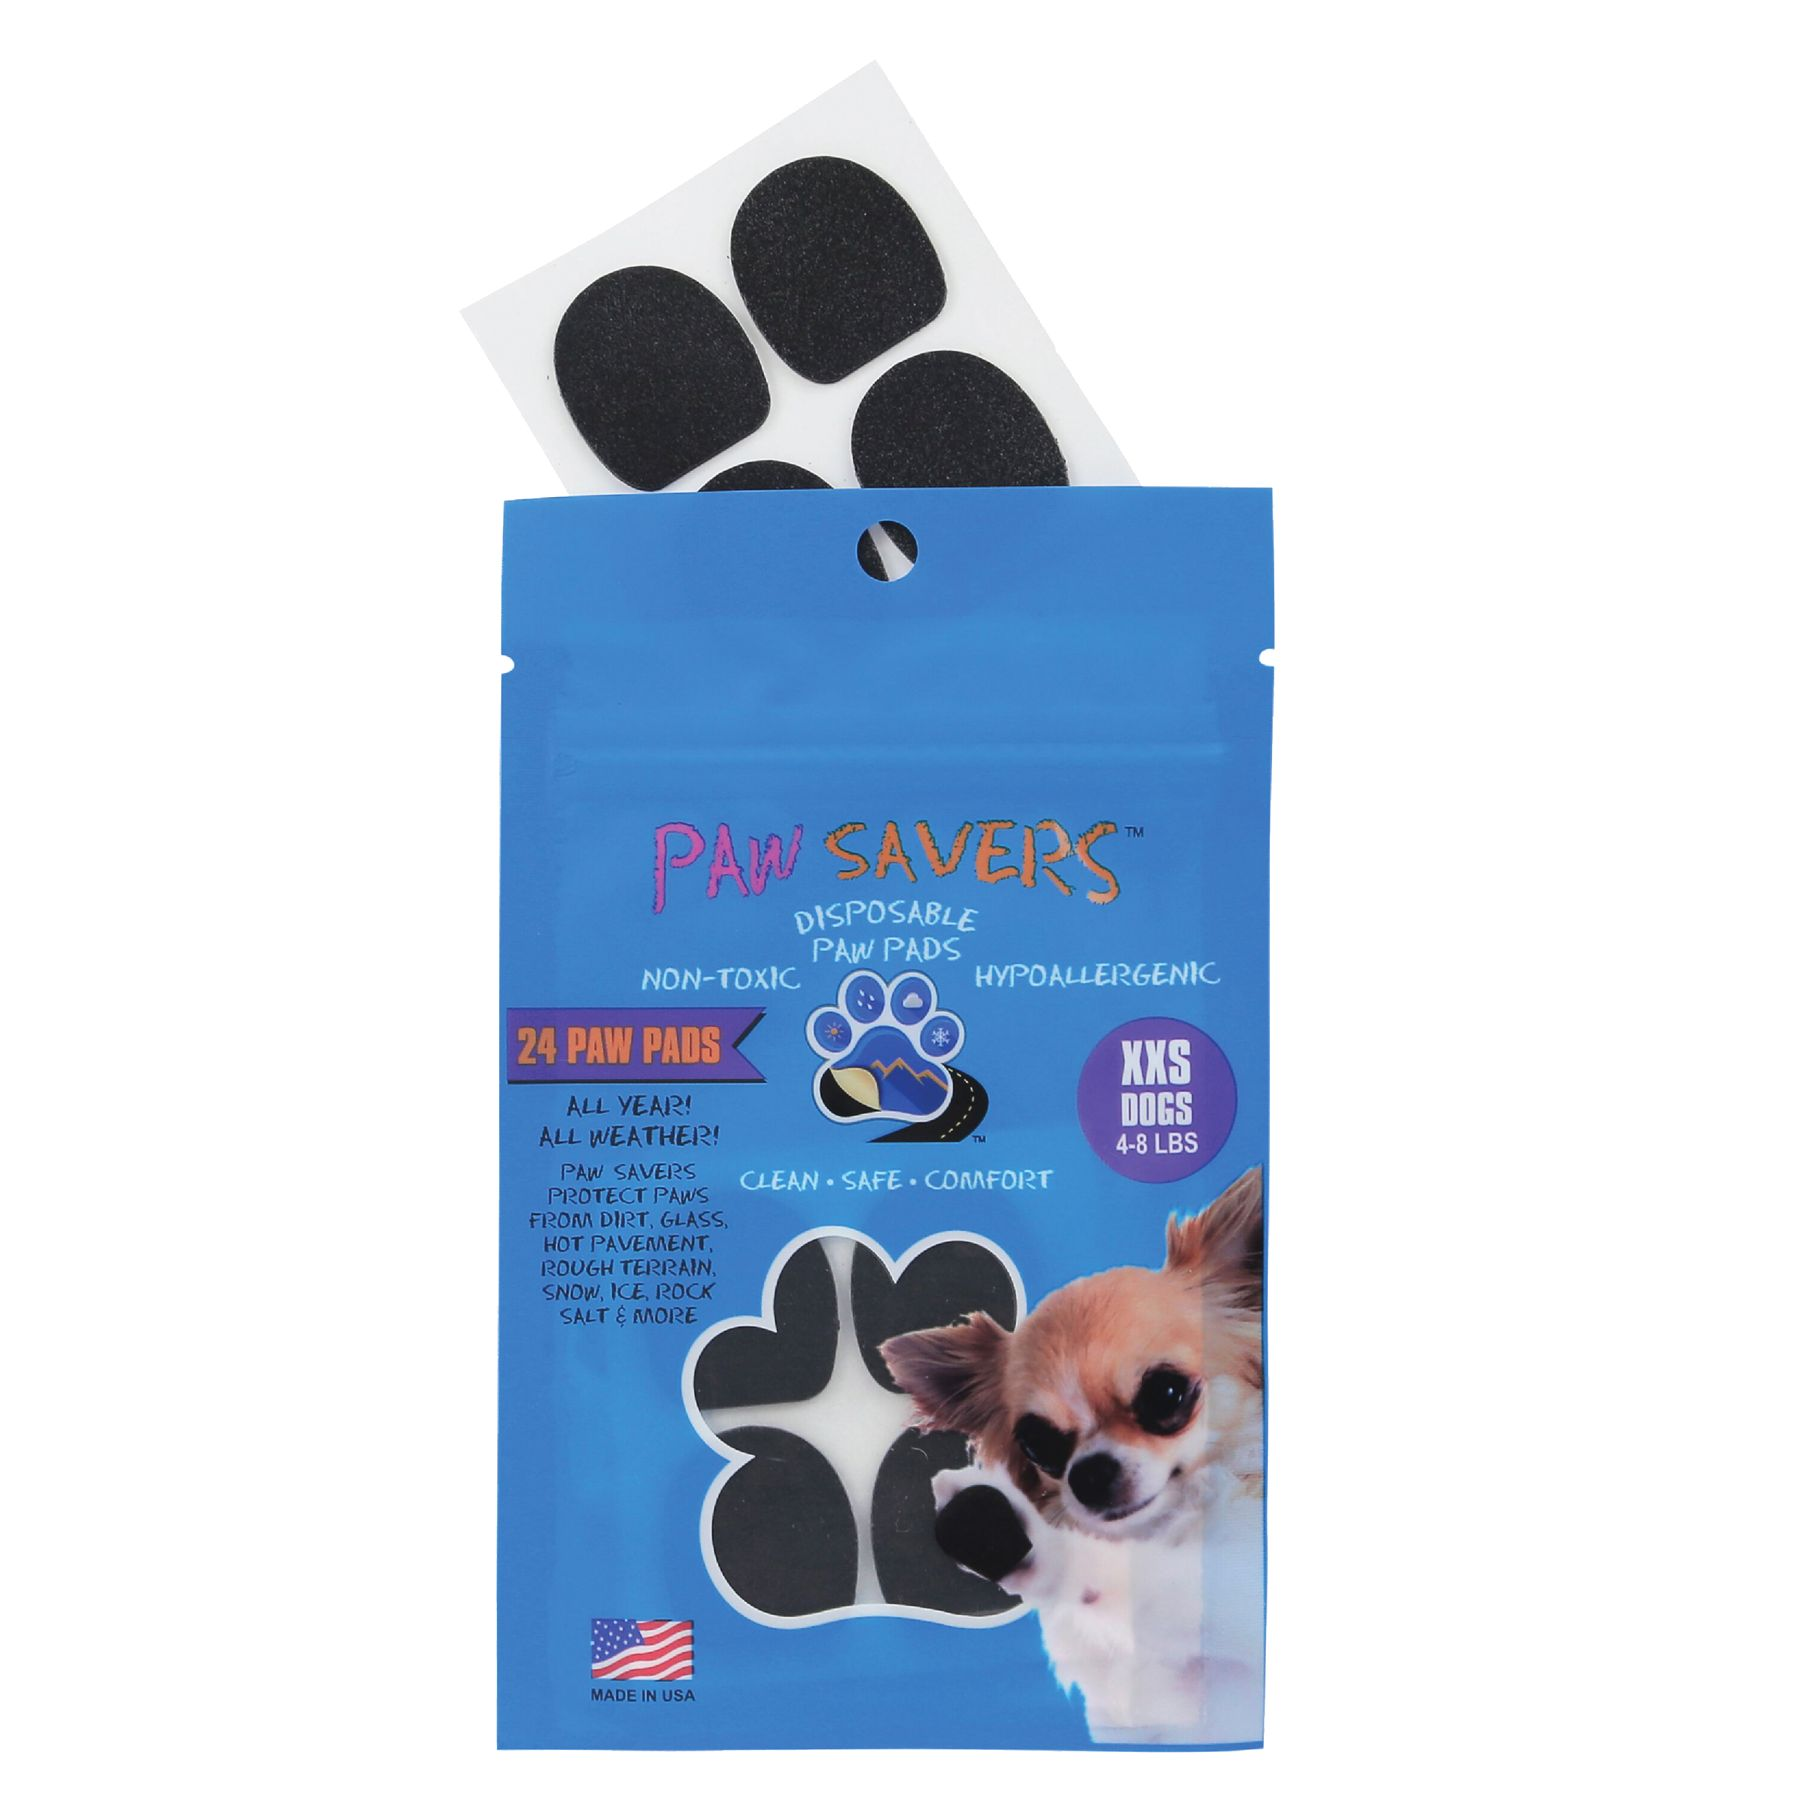 Paw Savers Disposable Paw Pads Size 2x Small